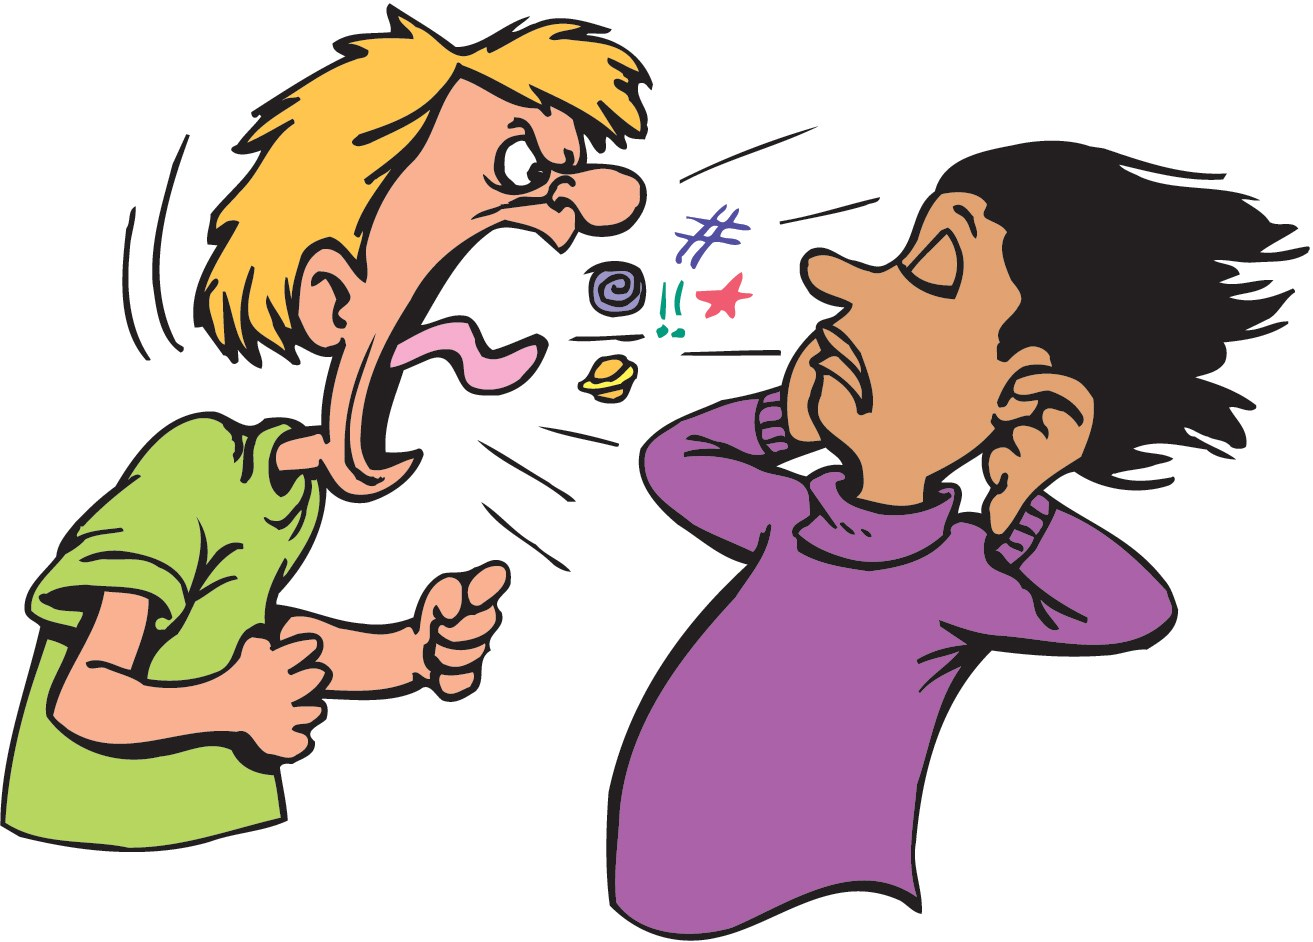 Clipart rude clipart images gallery for free download.